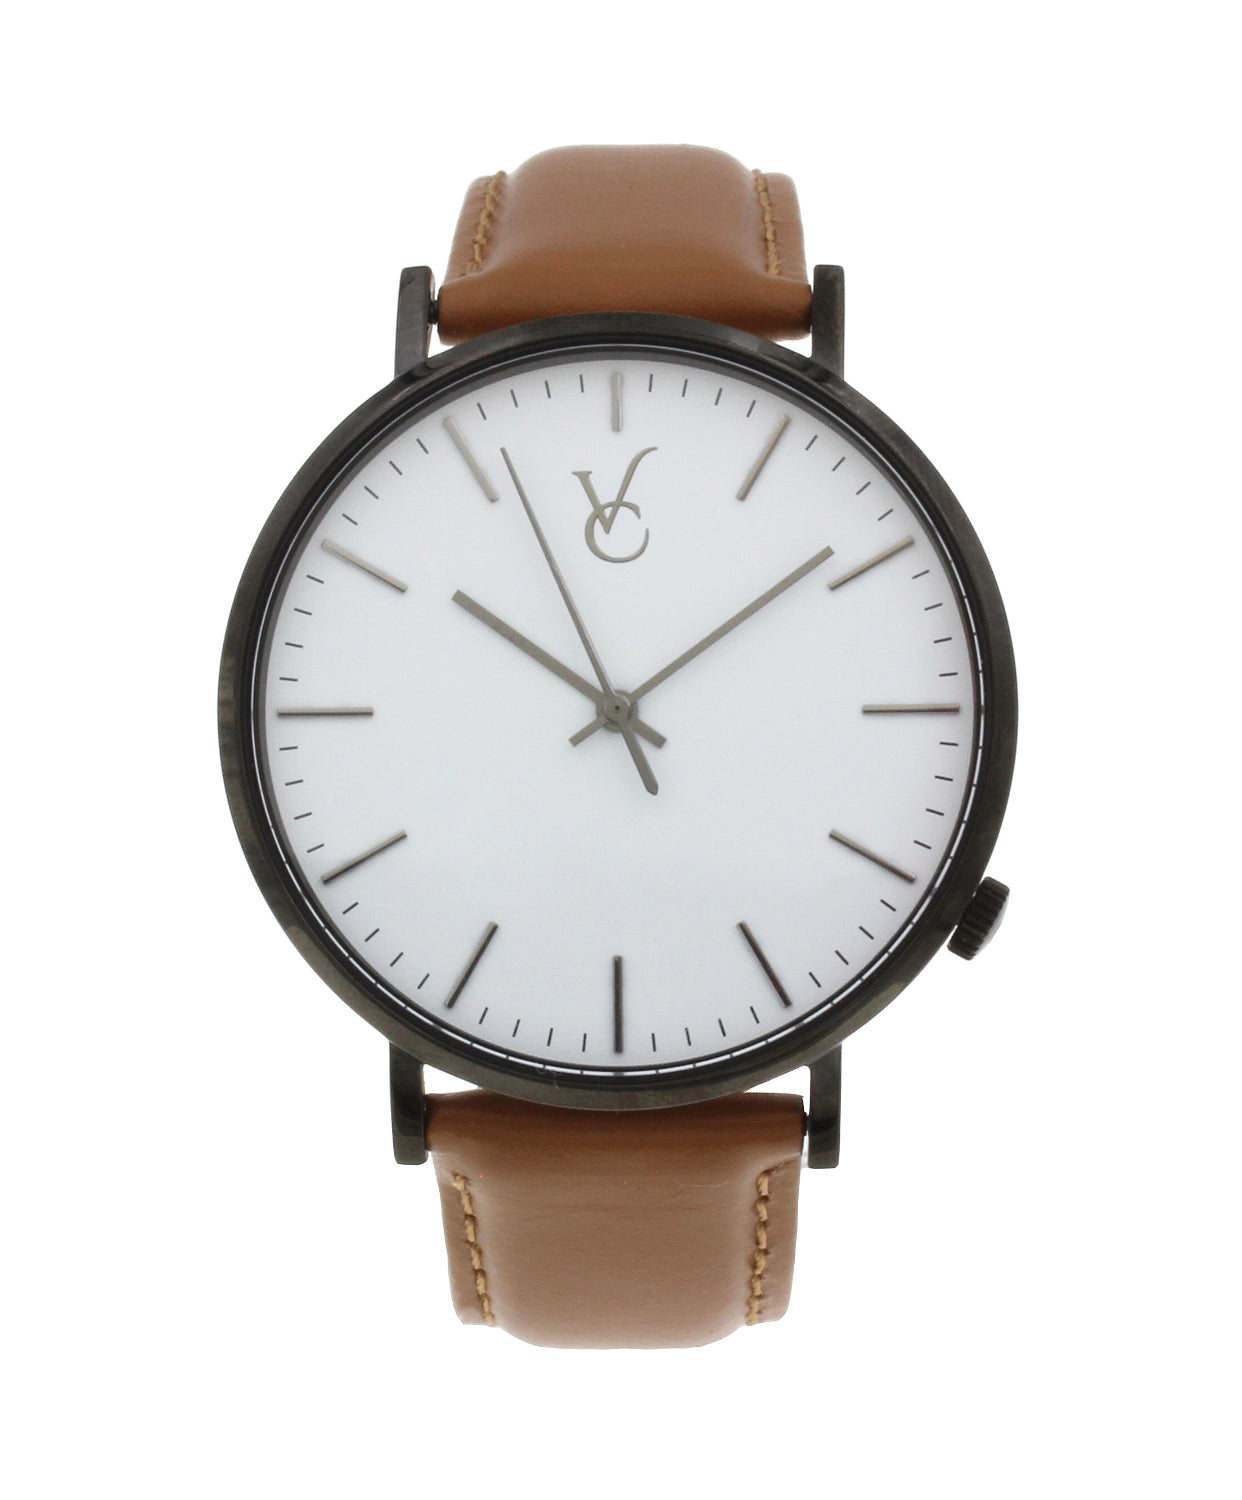 Brown Leather & Black Trim Watch